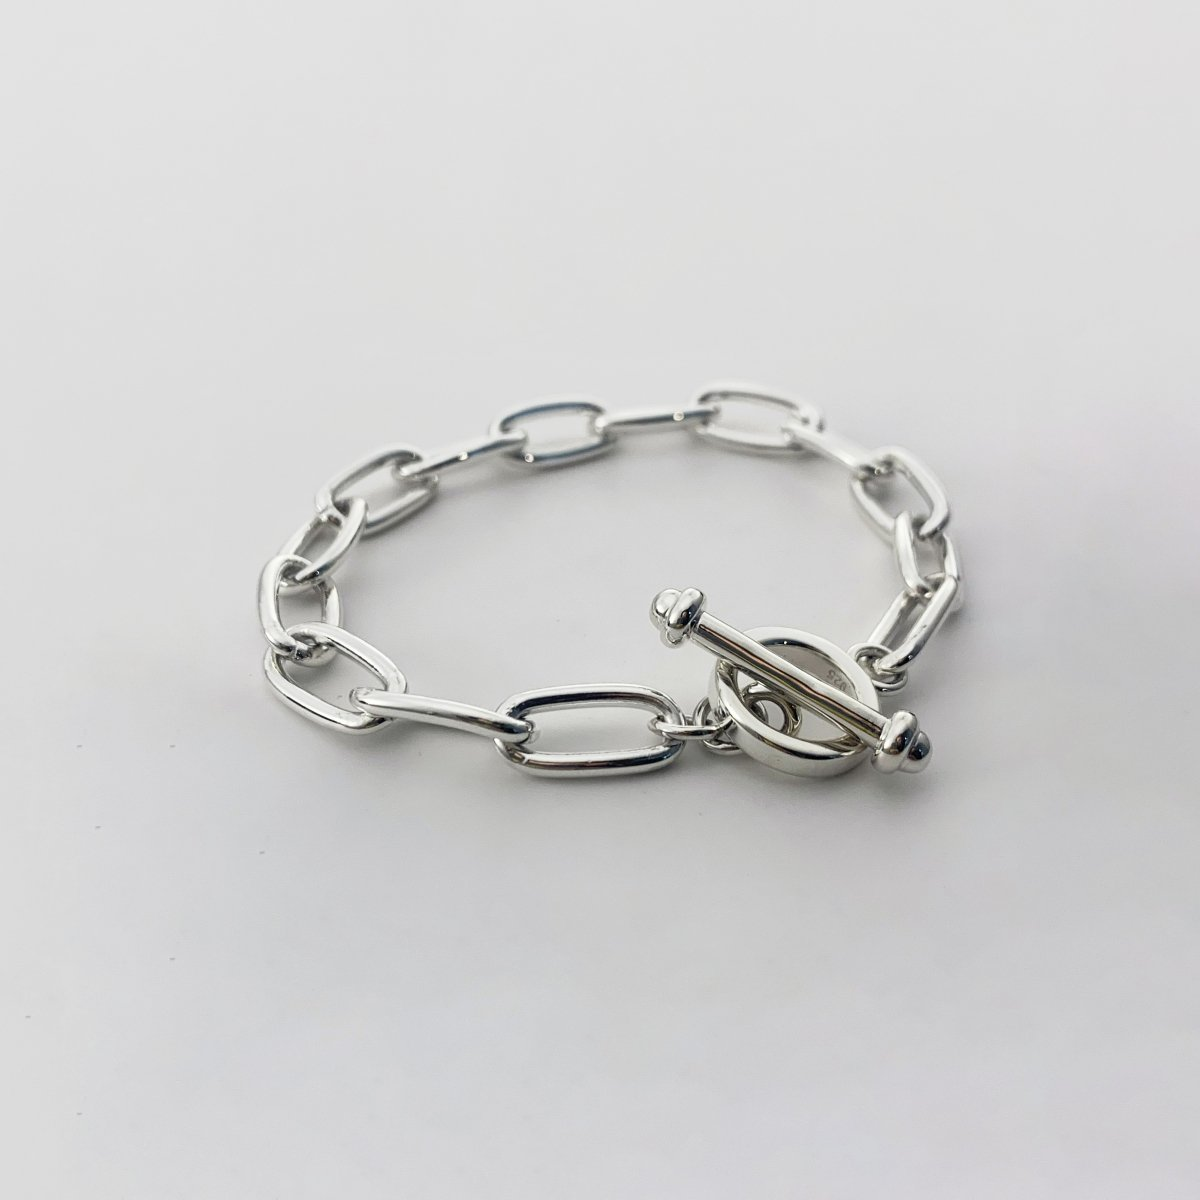 b chain bracelet-mens-<img class='new_mark_img2' src='https://img.shop-pro.jp/img/new/icons8.gif' style='border:none;display:inline;margin:0px;padding:0px;width:auto;' />